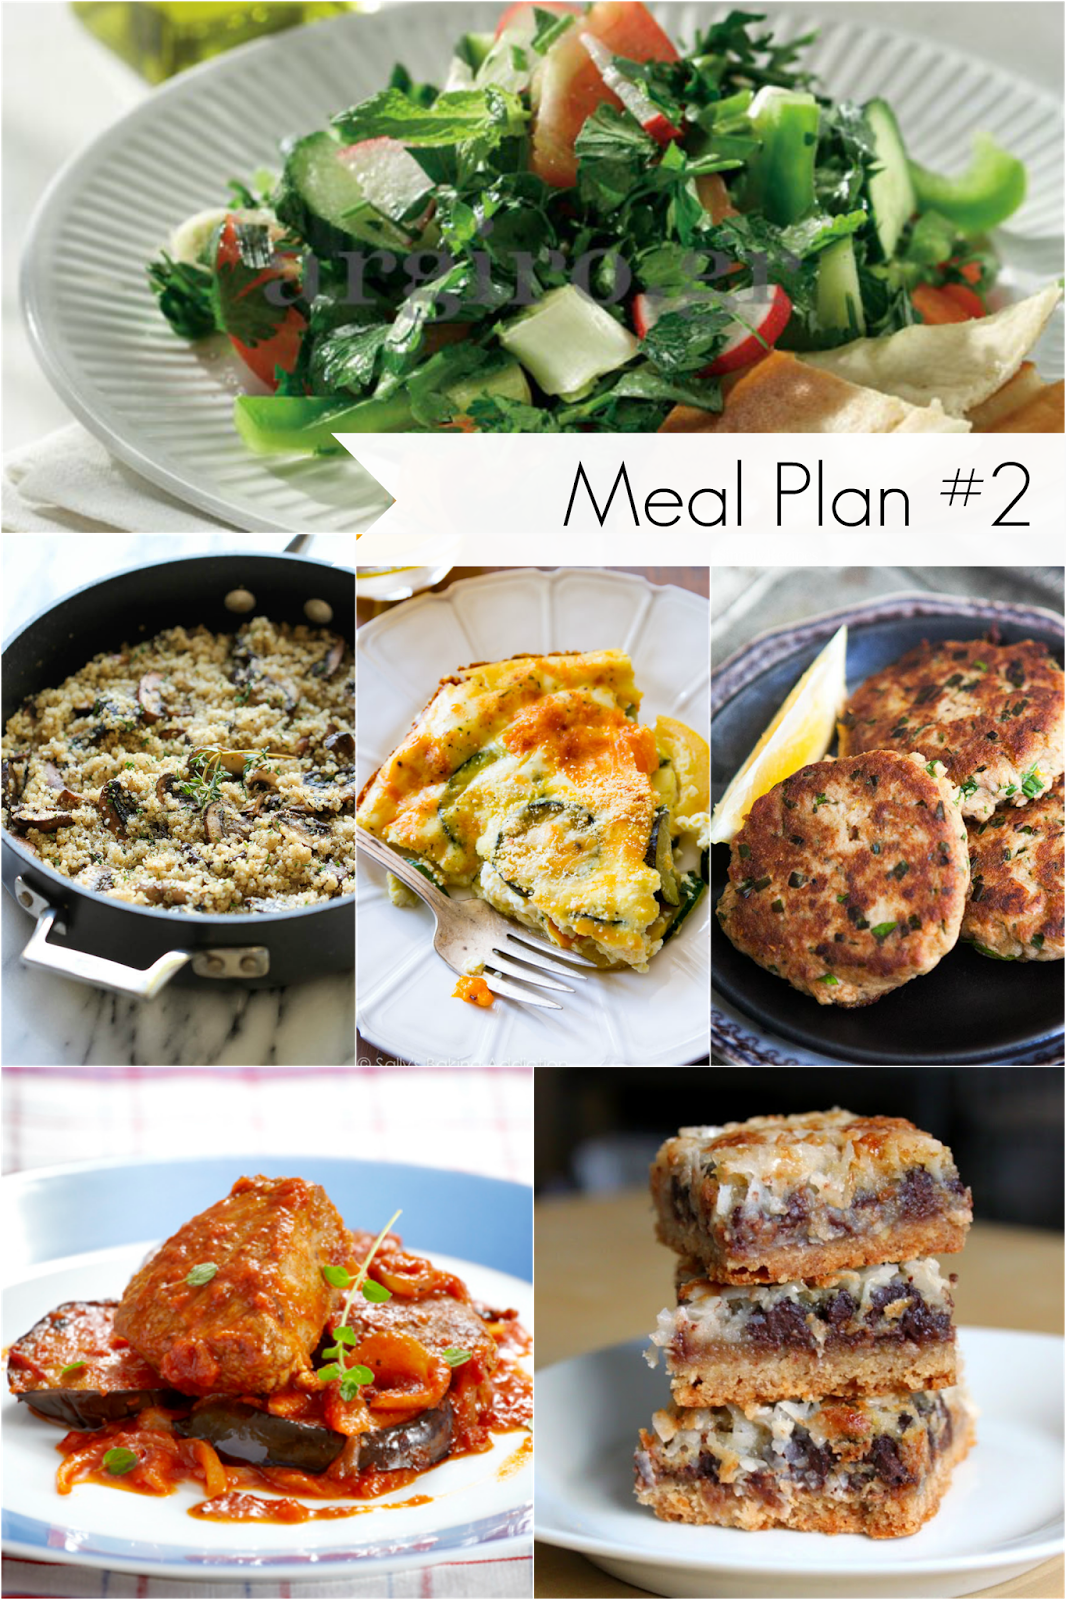 Ioanna's Notebook - Meal plan #2